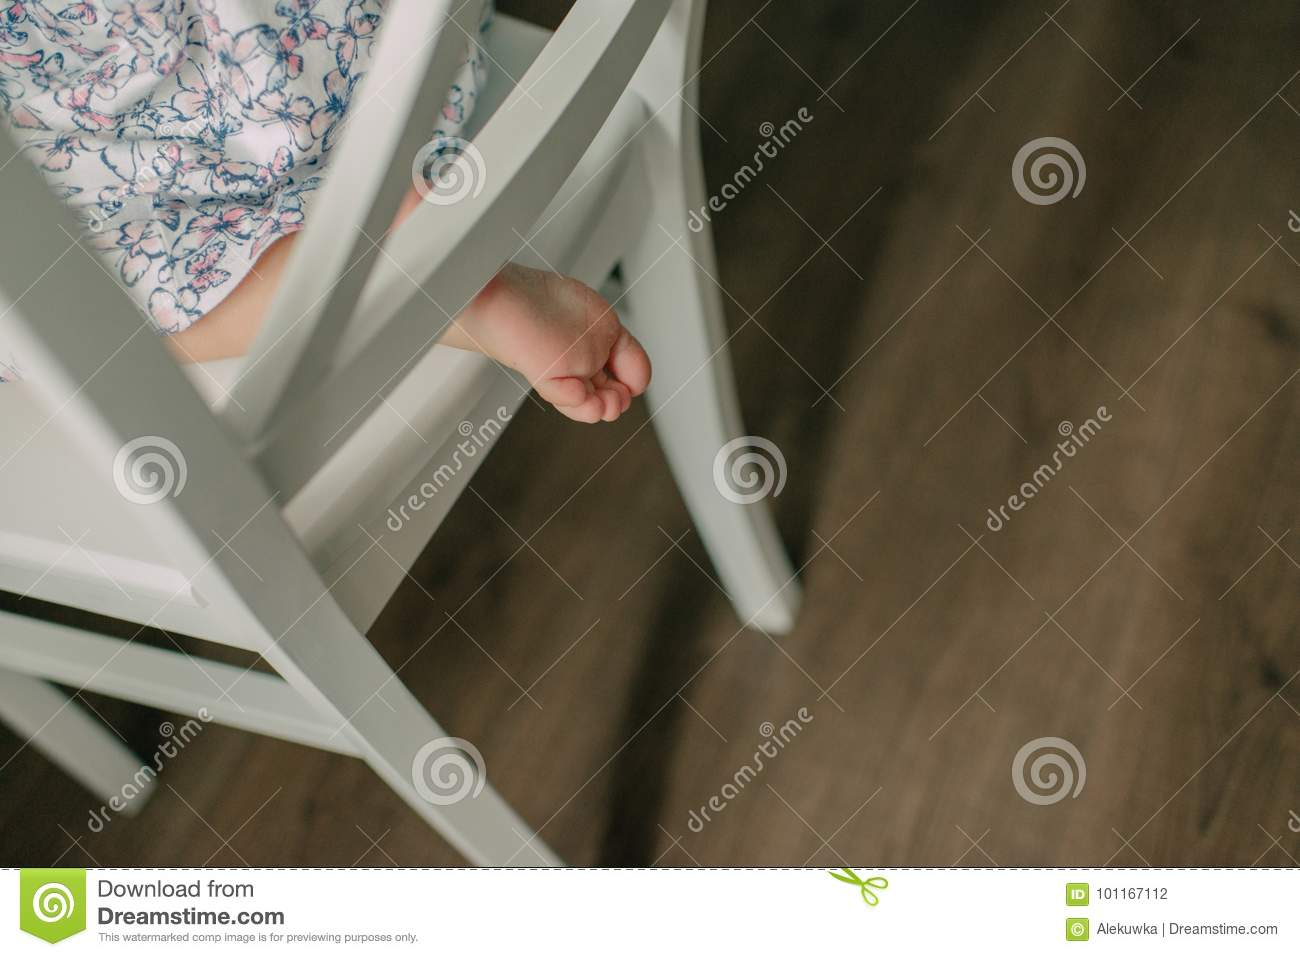 revolving chair for baby large living room with ottoman leg peeking stock photo image of toes foot table 101167112 under a vintage